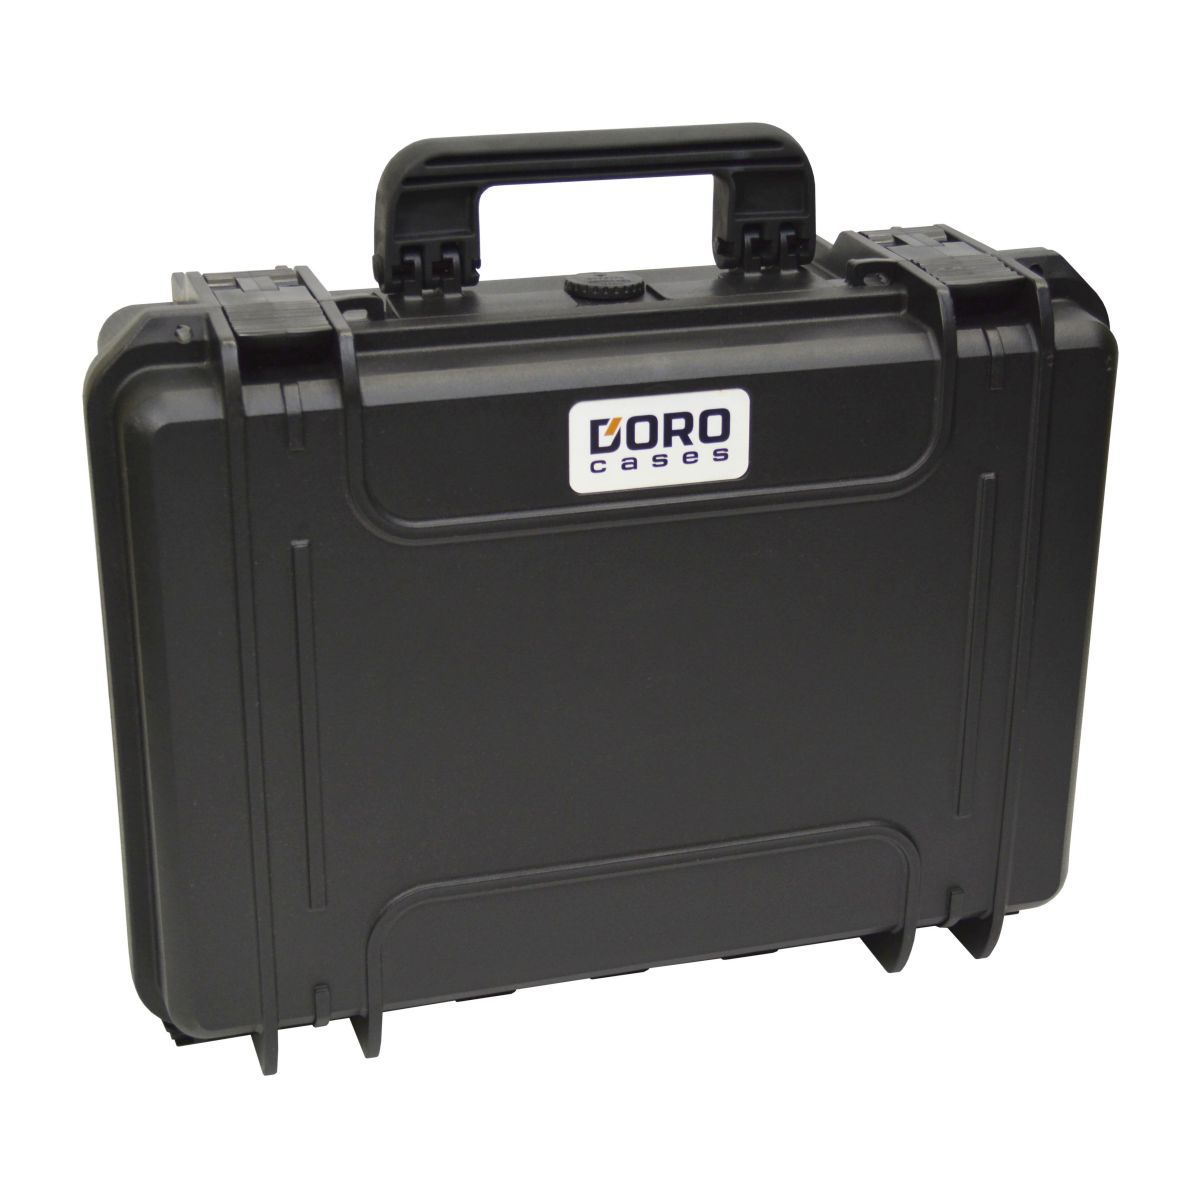 DORO D1109-5 case with custom foam to fit DJI Spark & accessories